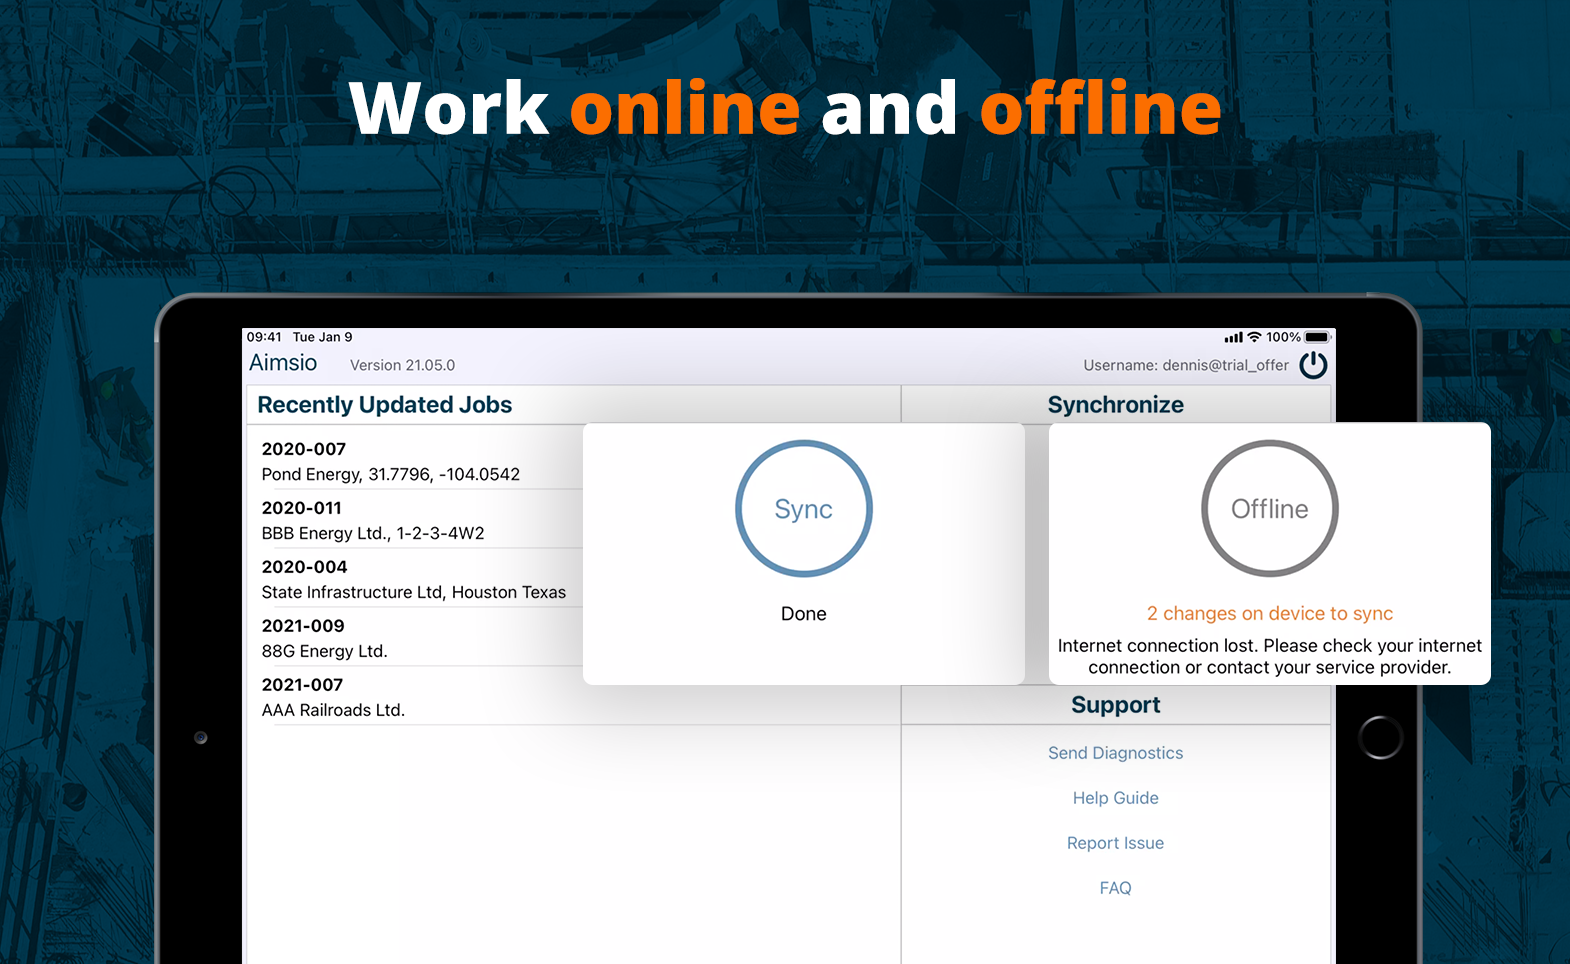 Aimsio works both online and offline. If you don't have service in the field, no problem! Simply use Aimsio on your mobile device as you normally would, and sync the data when you have service again.